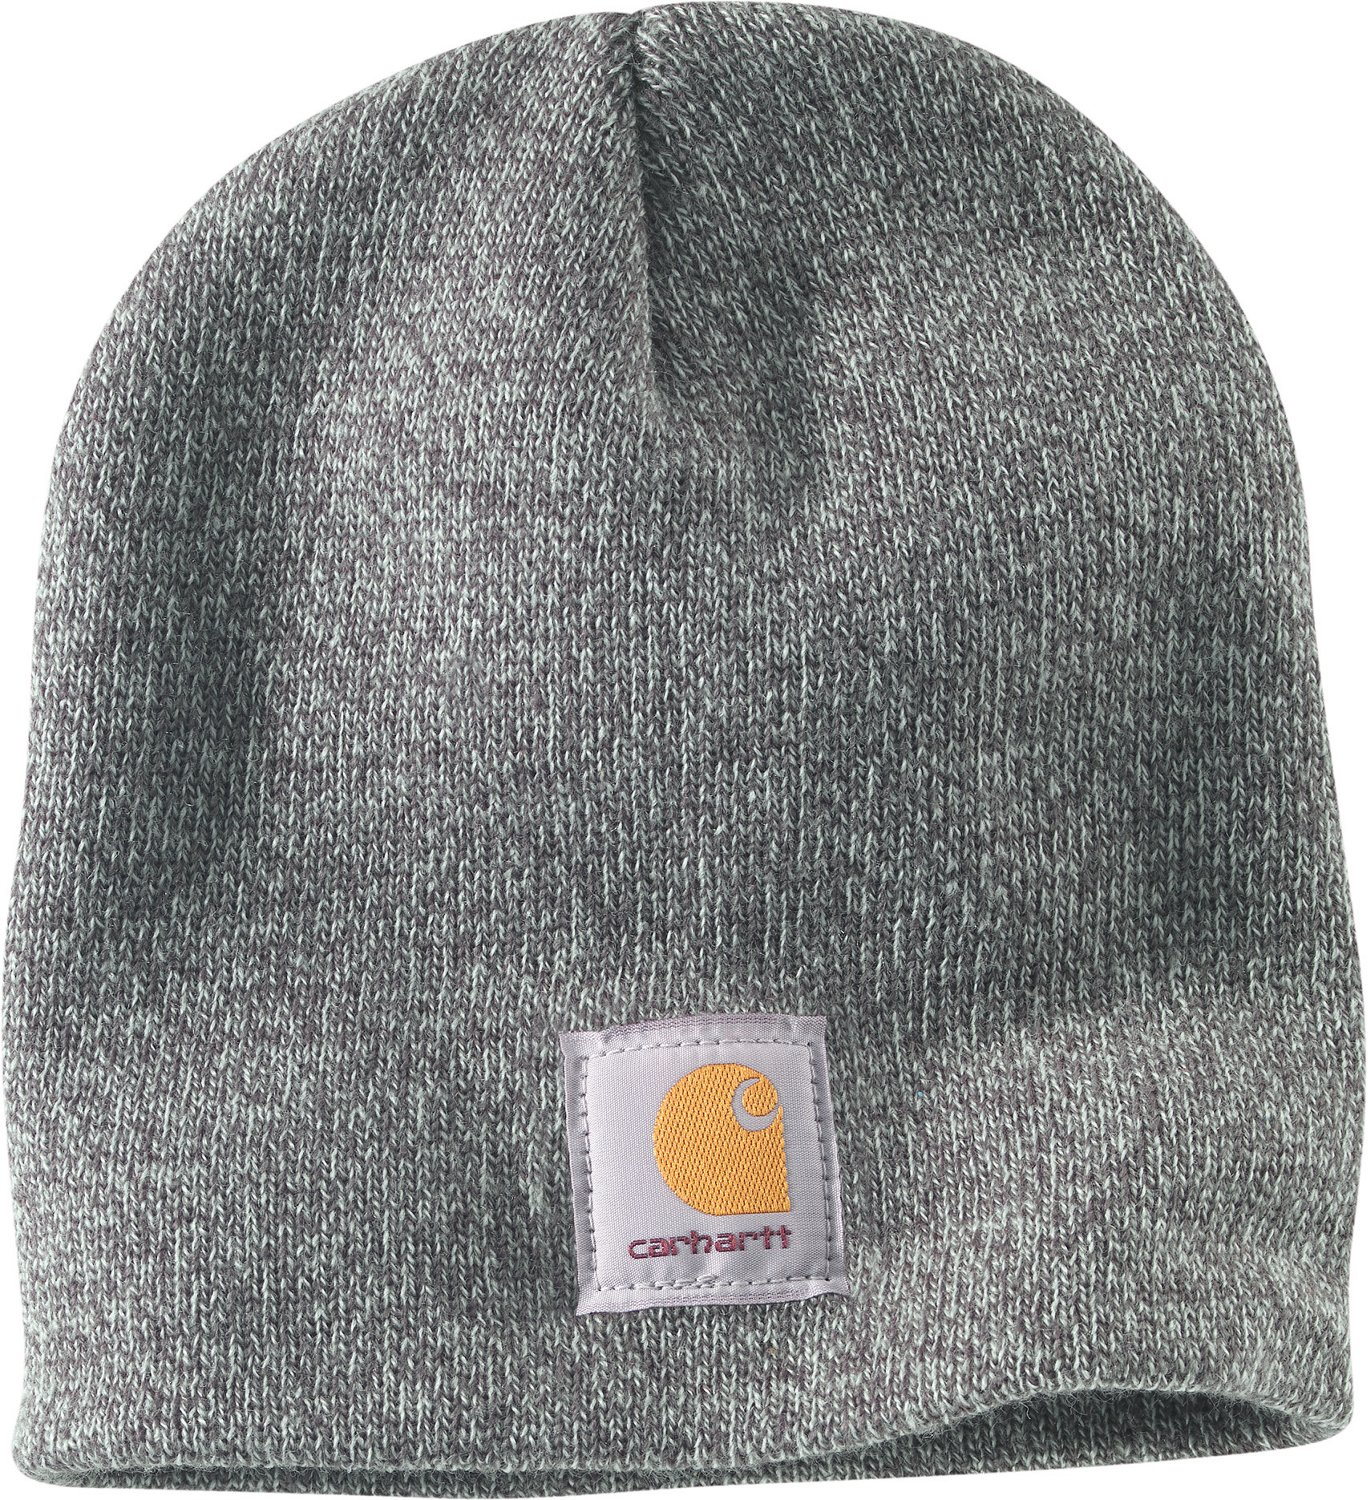 ea0f7a3ec70 Display product reviews for Carhartt Men s Acrylic Knit Hat